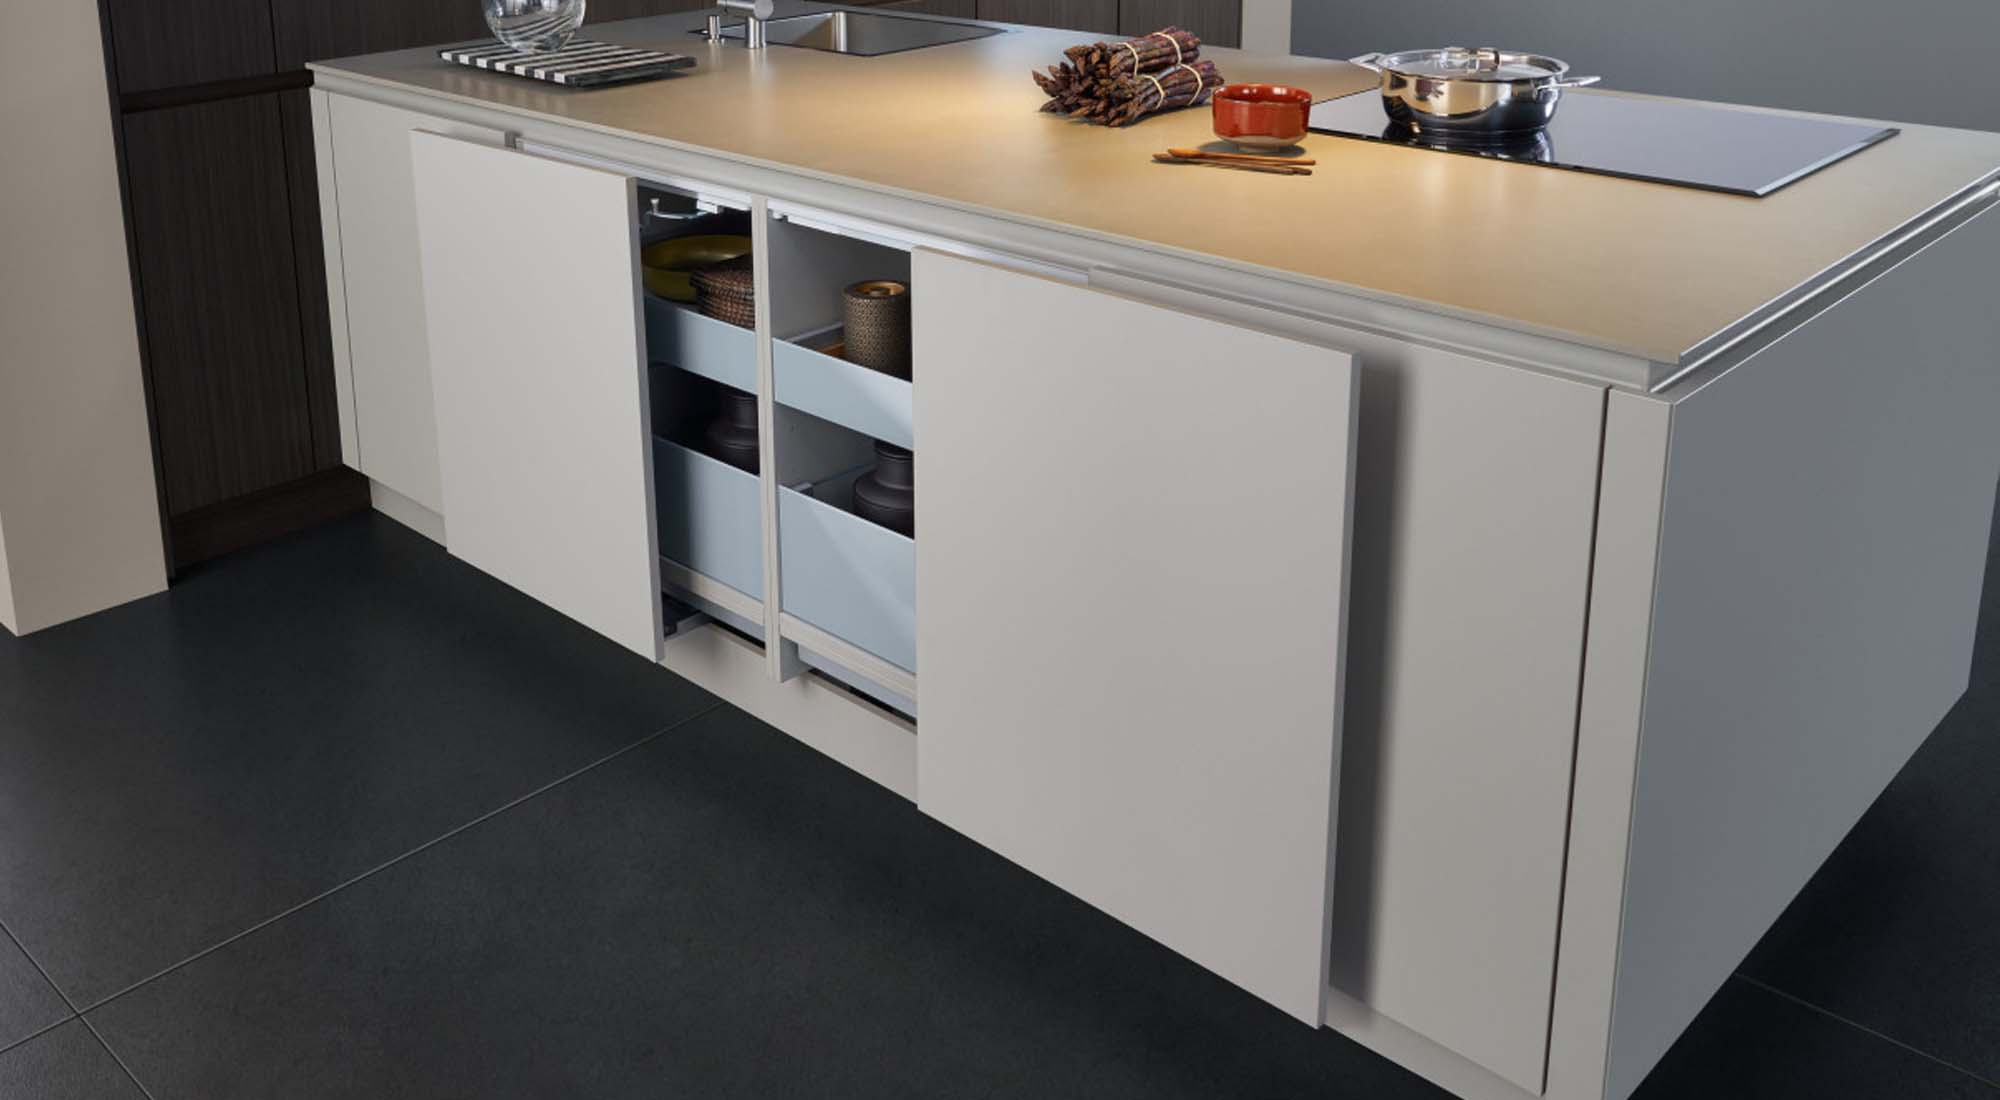 Designer kitchen worktop and storage by Hubble